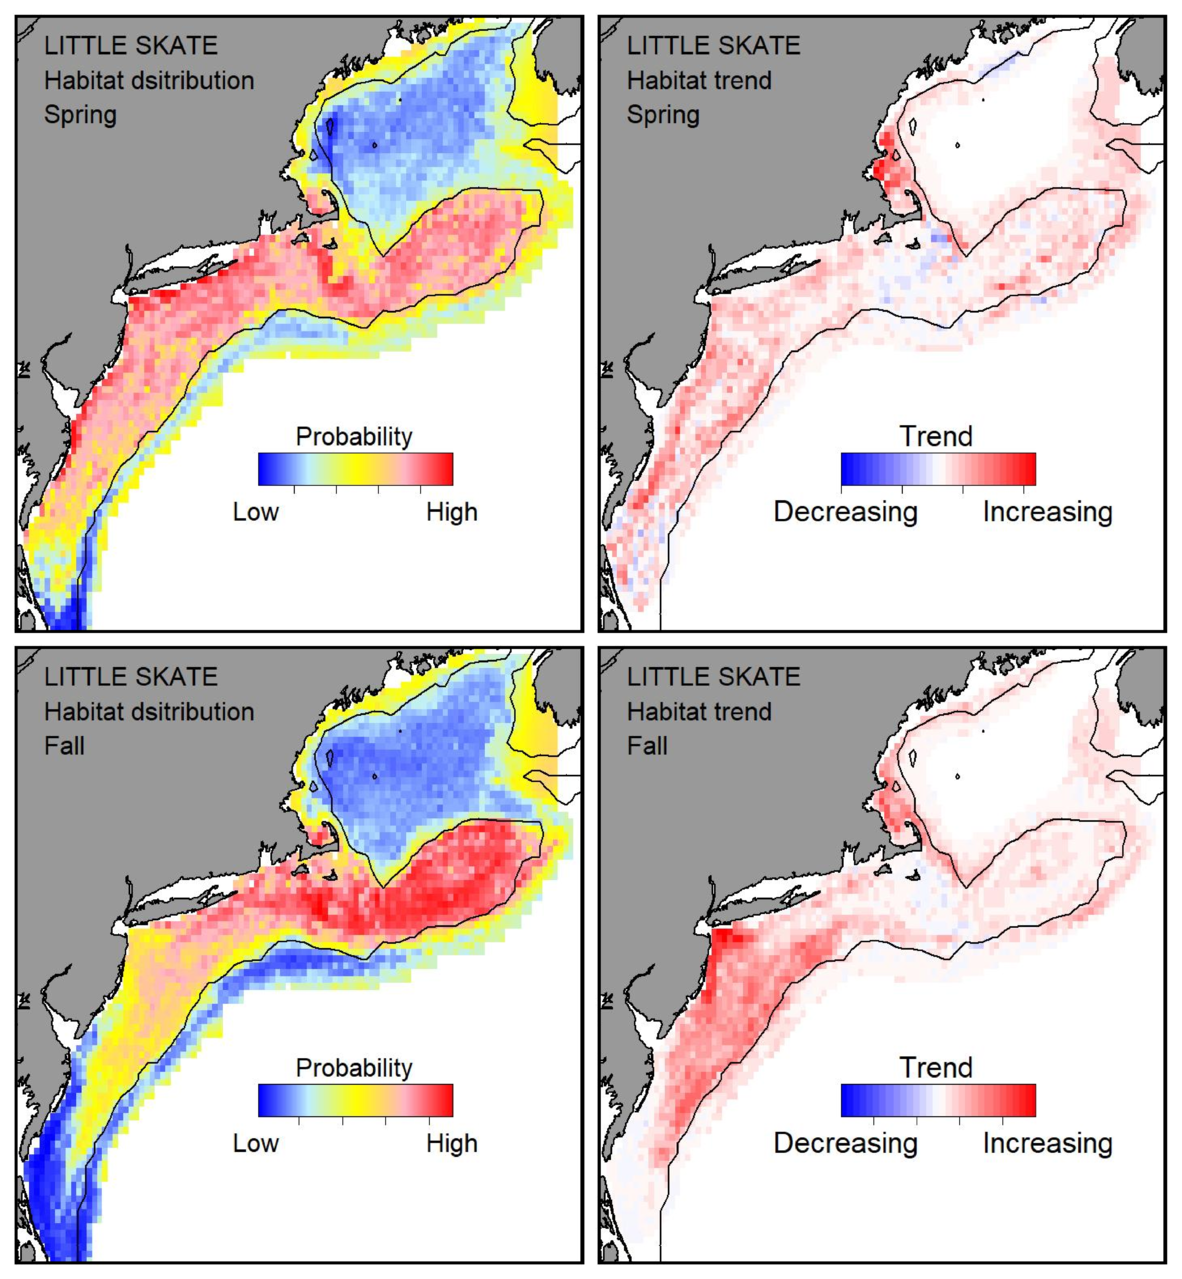 Top row: Probable habitat distribution for little skate showing the highest concentration and increasing trend in the Gulf of Maine during the spring. Bottom row: Probable habitat distribution for little skate showing the highest concentration and increasing trend in the Gulf of Maine during the fall.